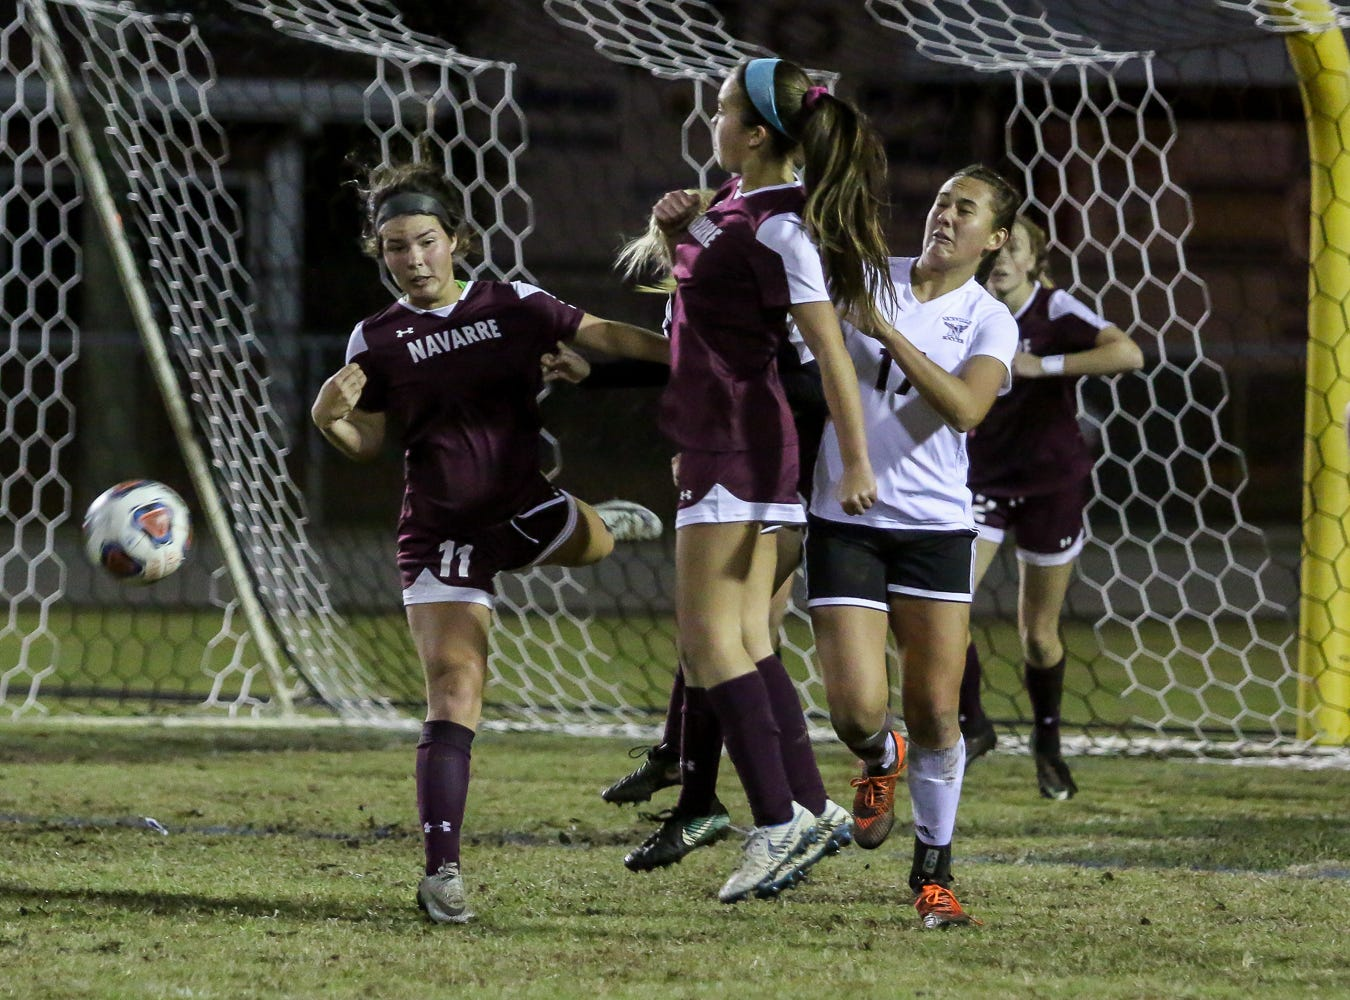 The Navarre defenders help block a Niceville shot in a District 1-4A showdown of unbeaten teams at Navarre High School on Tuesday, December 4, 2018. The game ended in a 1-1 tie.